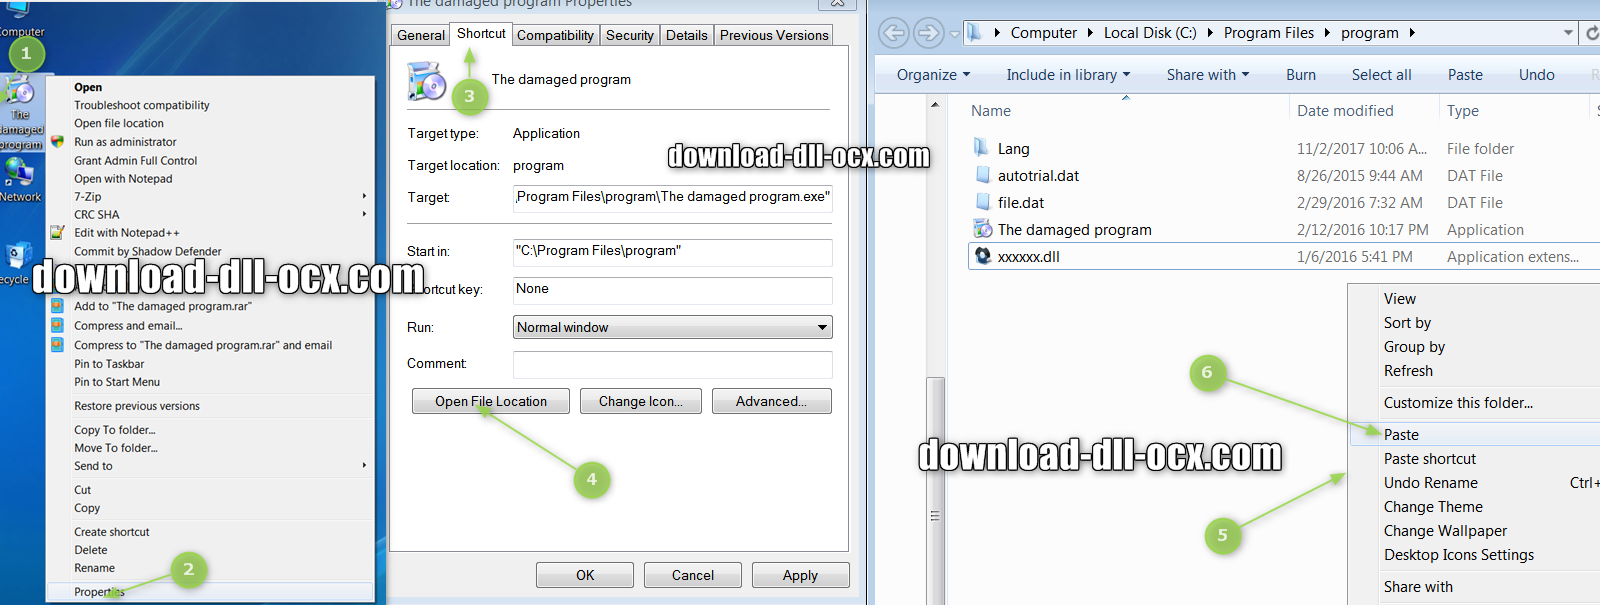 how to install SCHDMAPI.dll file? for fix missing